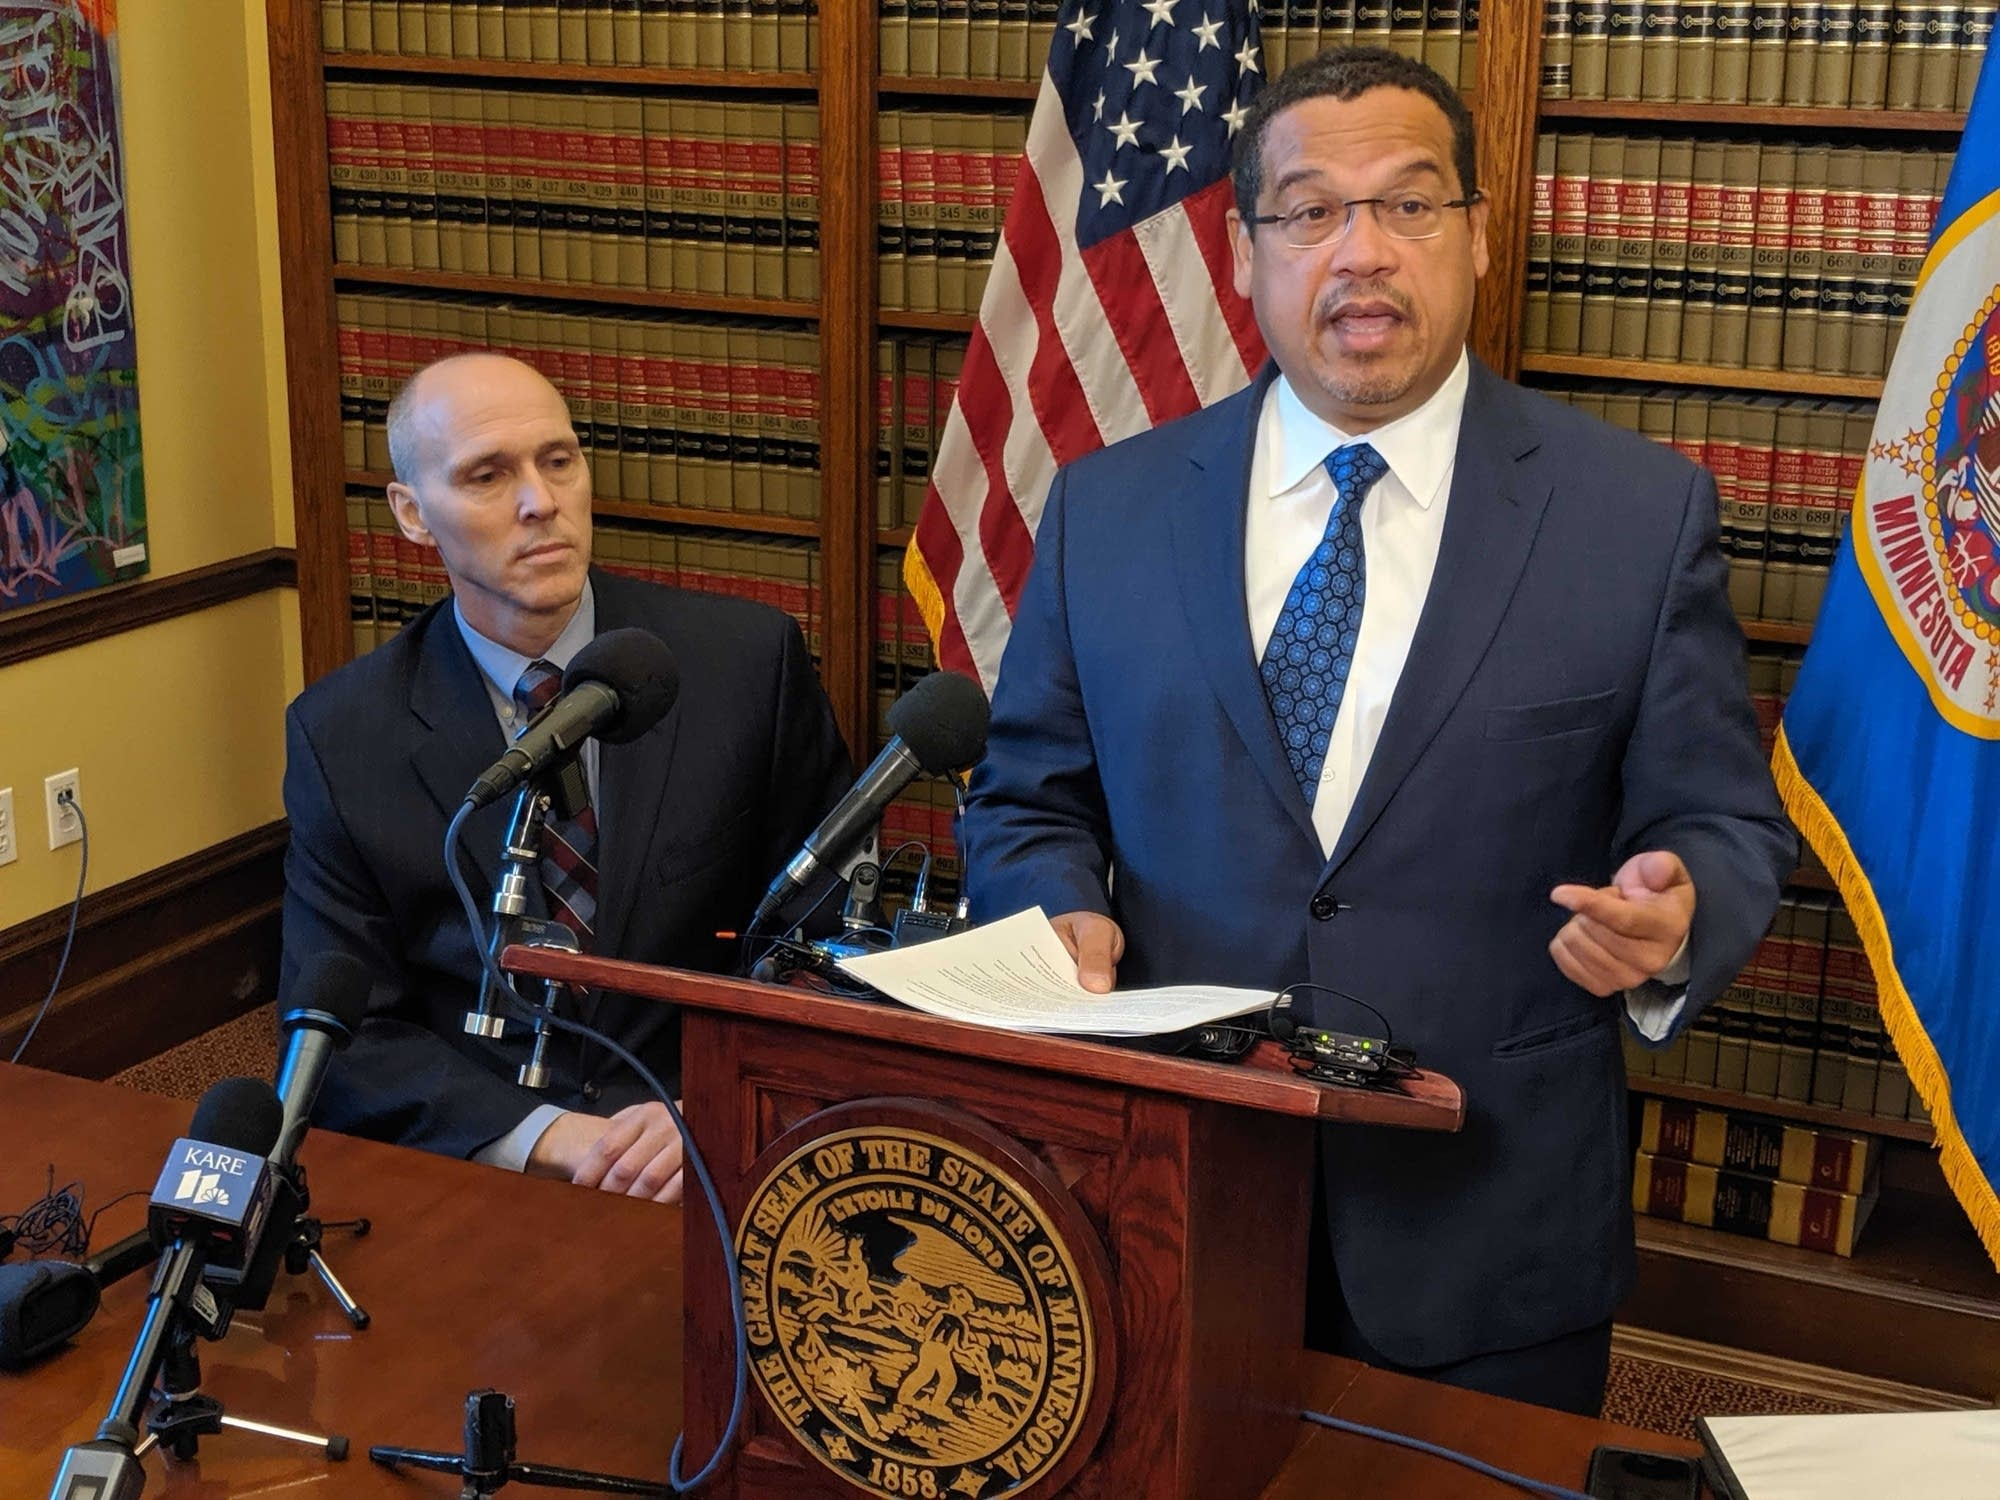 State Rep. Rod Hamilton and Attorney General Keith Ellison.